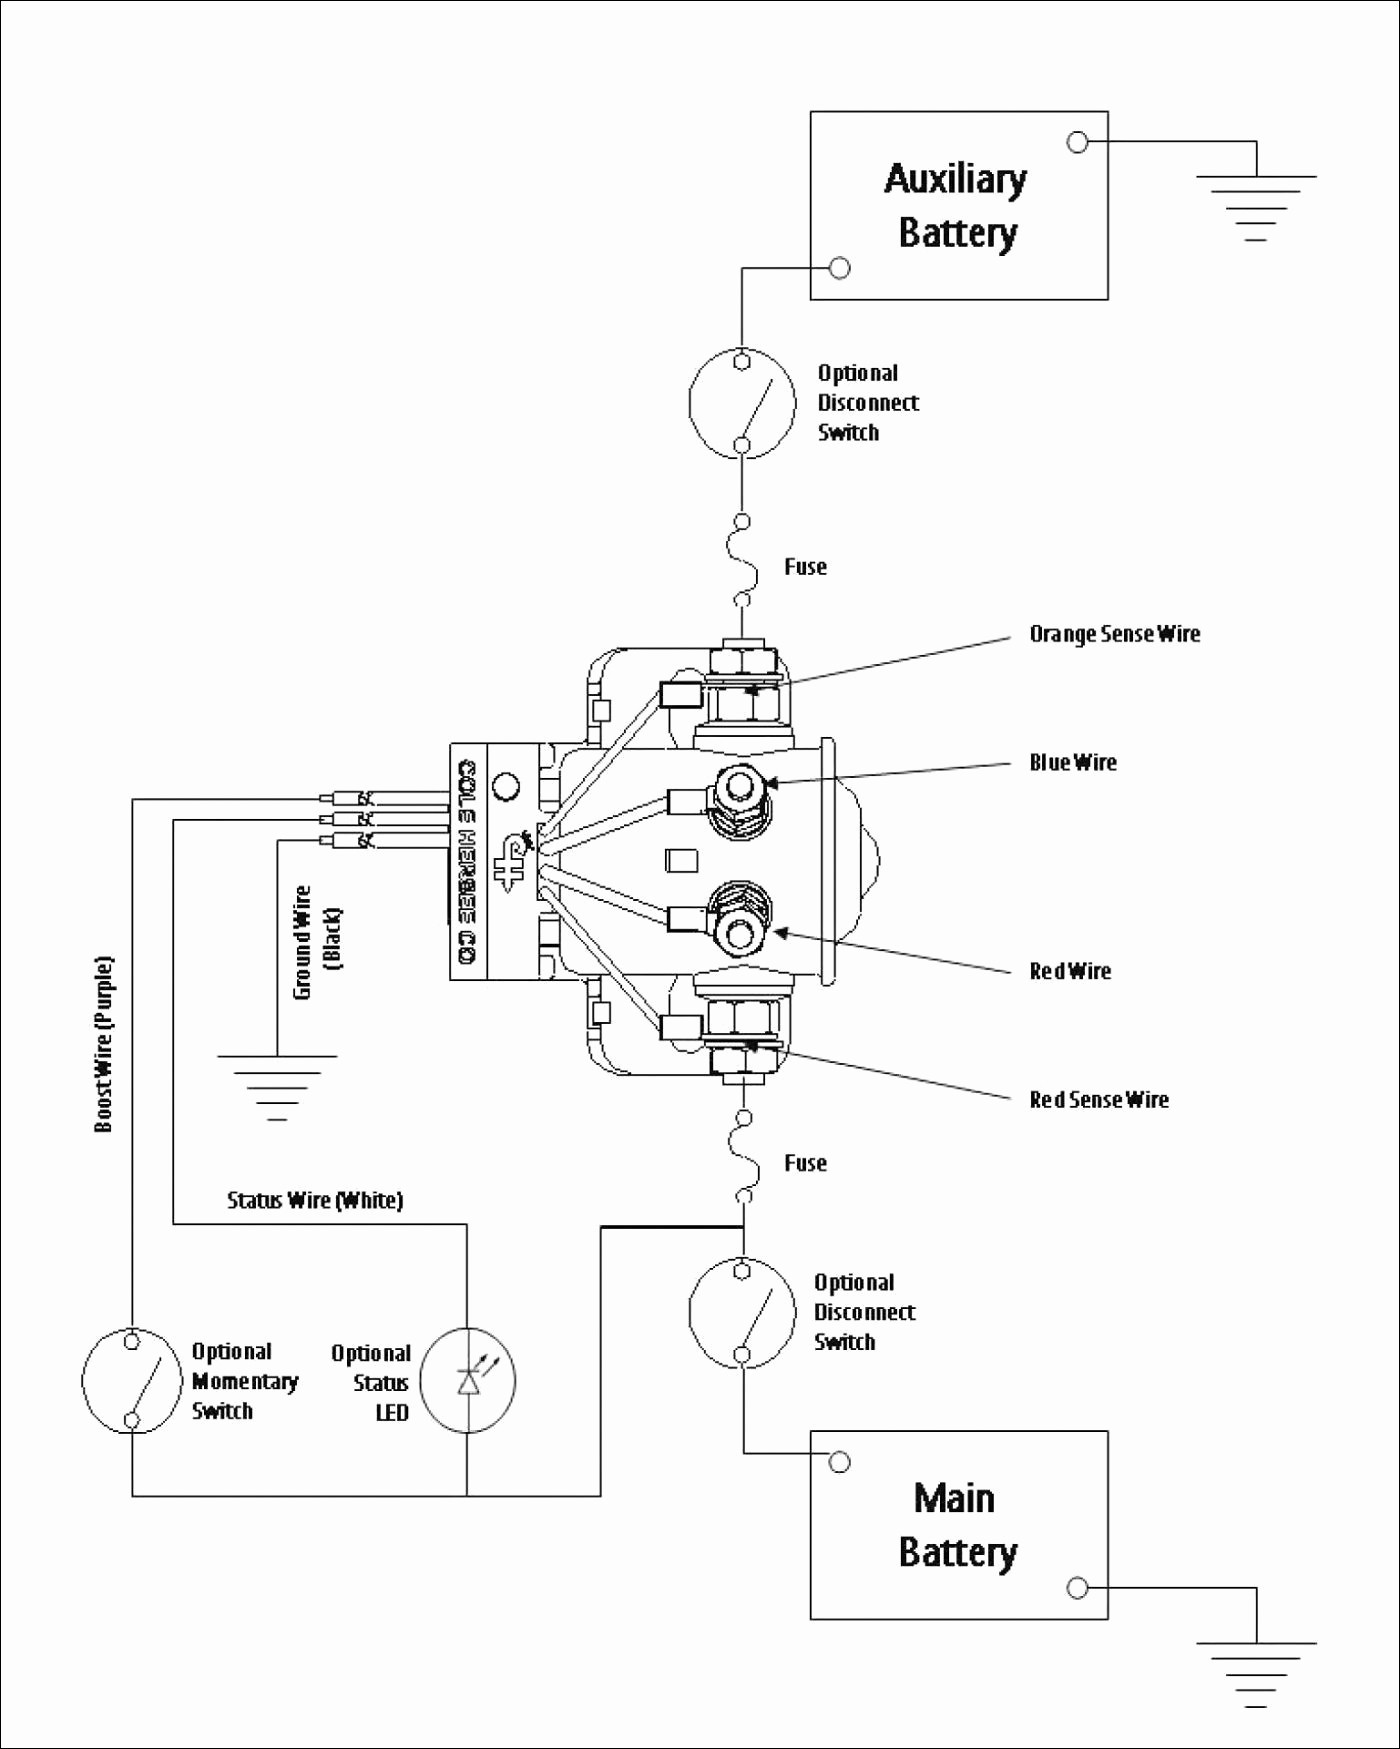 Wiring Diagram for Western Snow Plow the Boss Snow Plow Wiring Diagrams